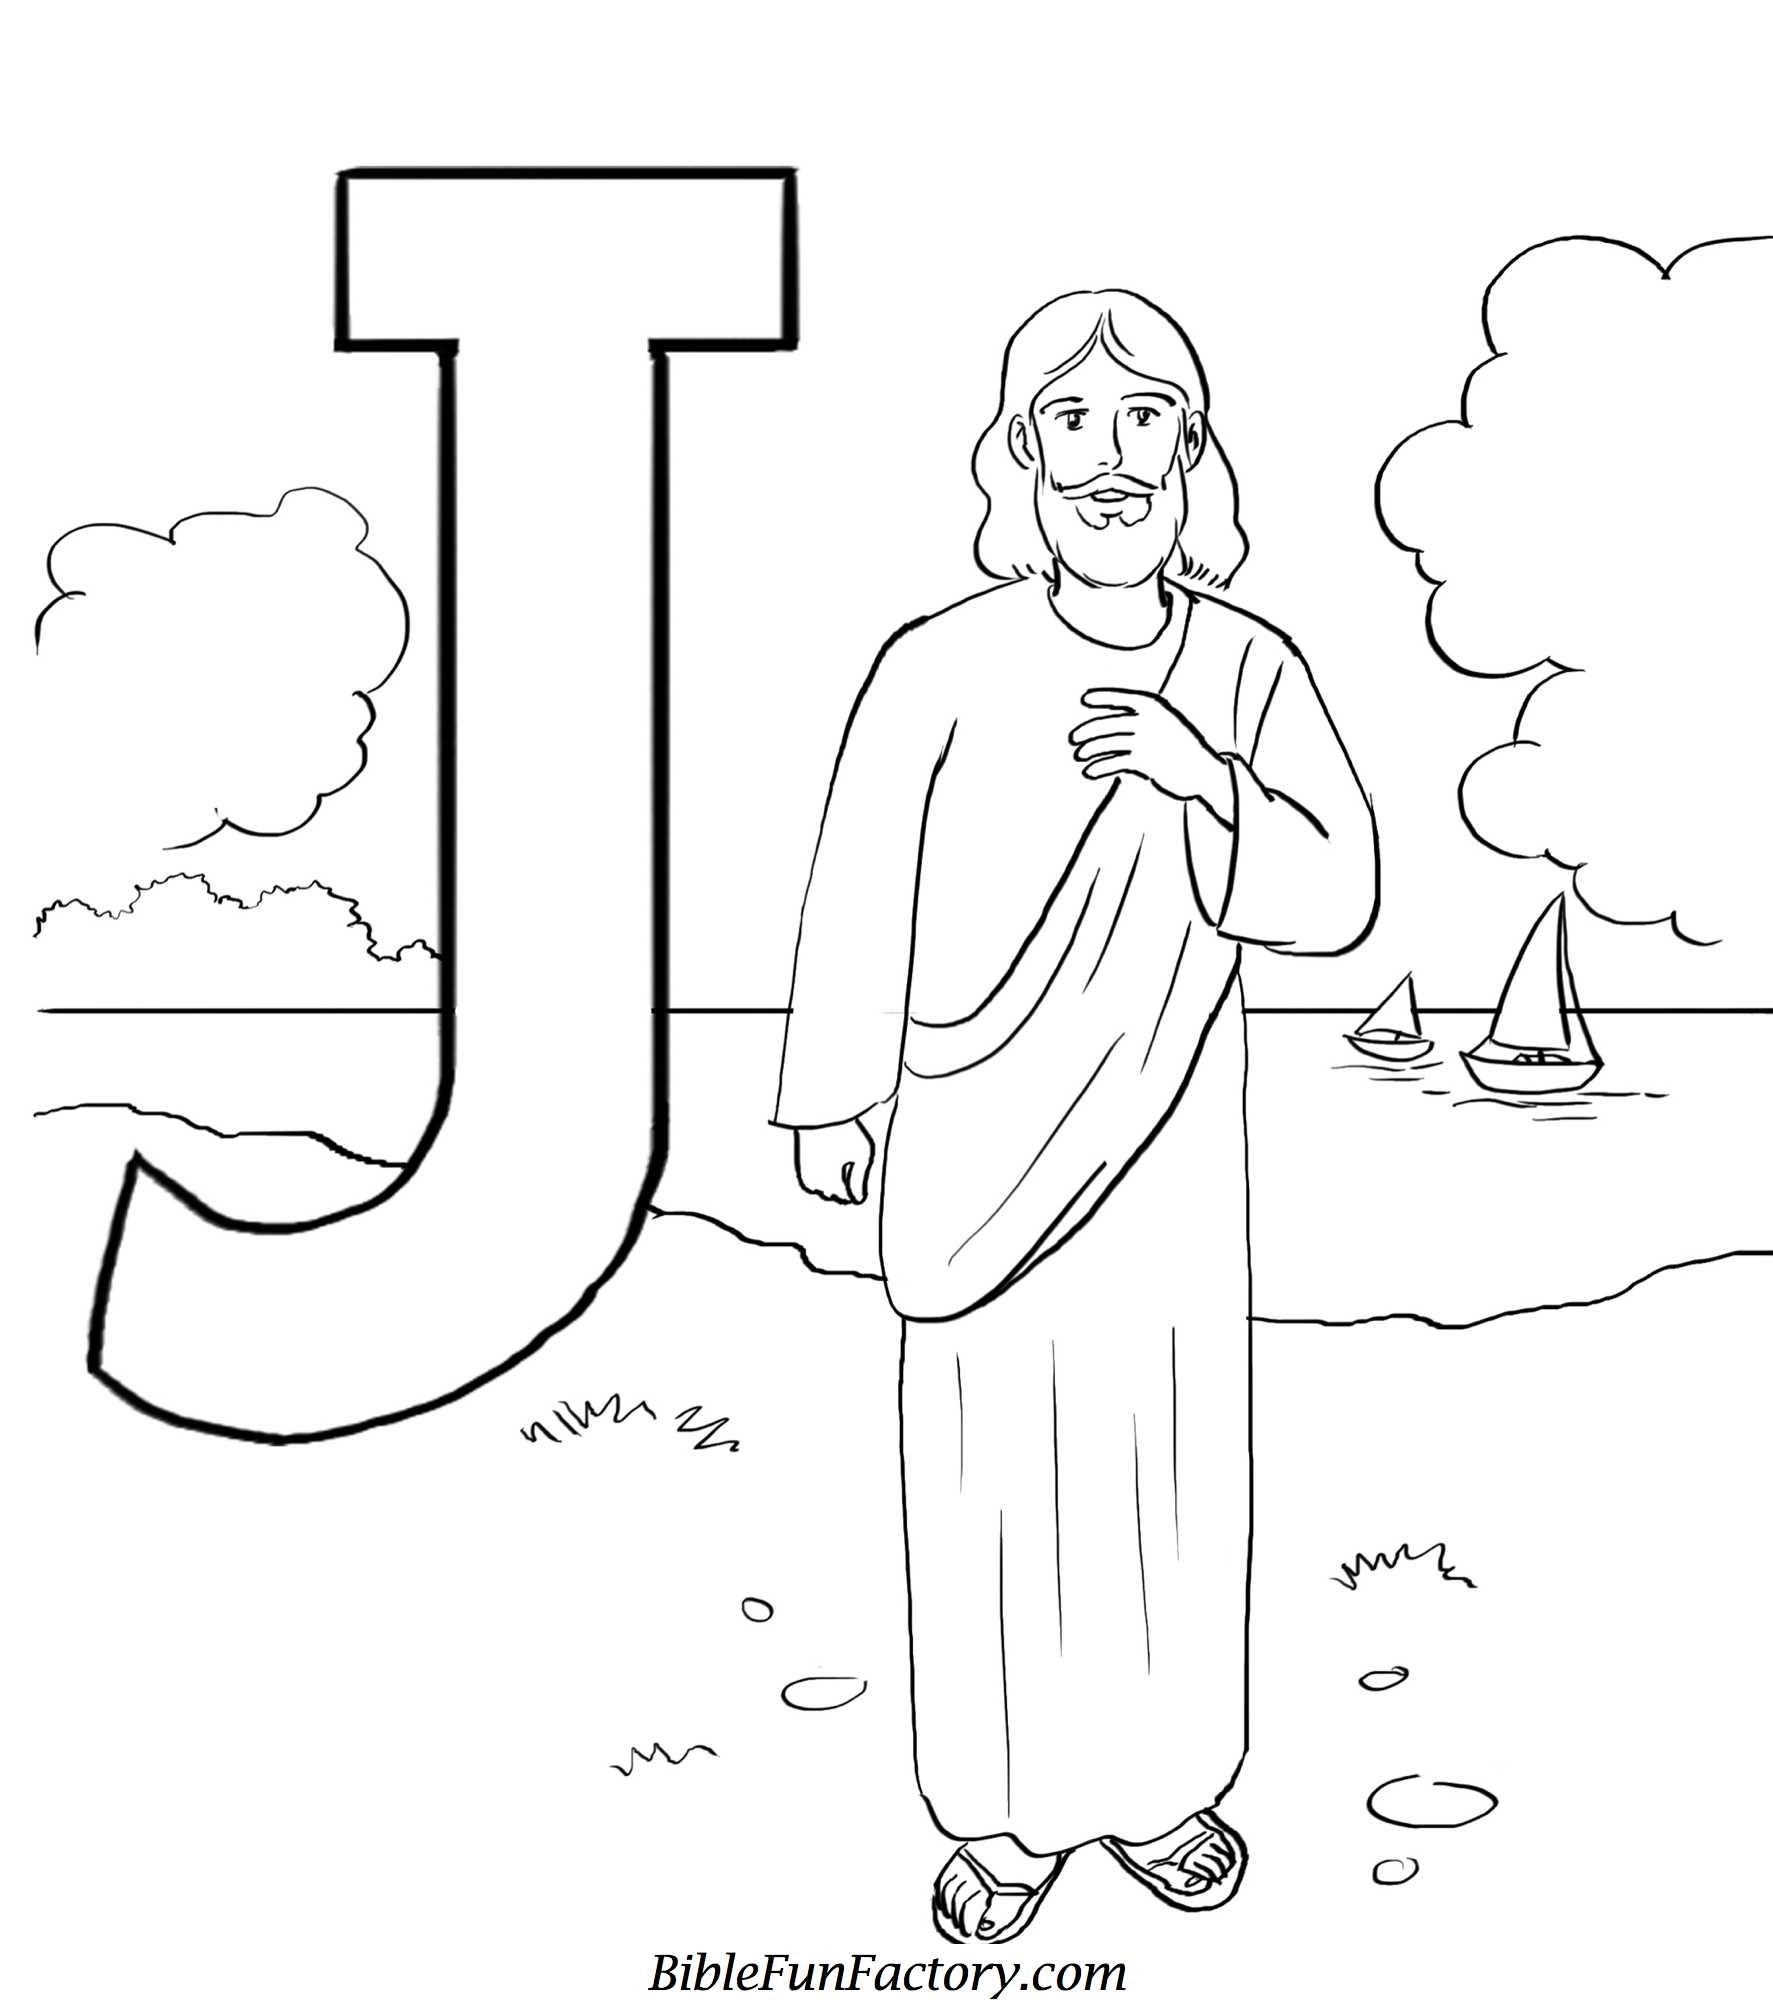 jesus coloring pages - free jesus coloring pages